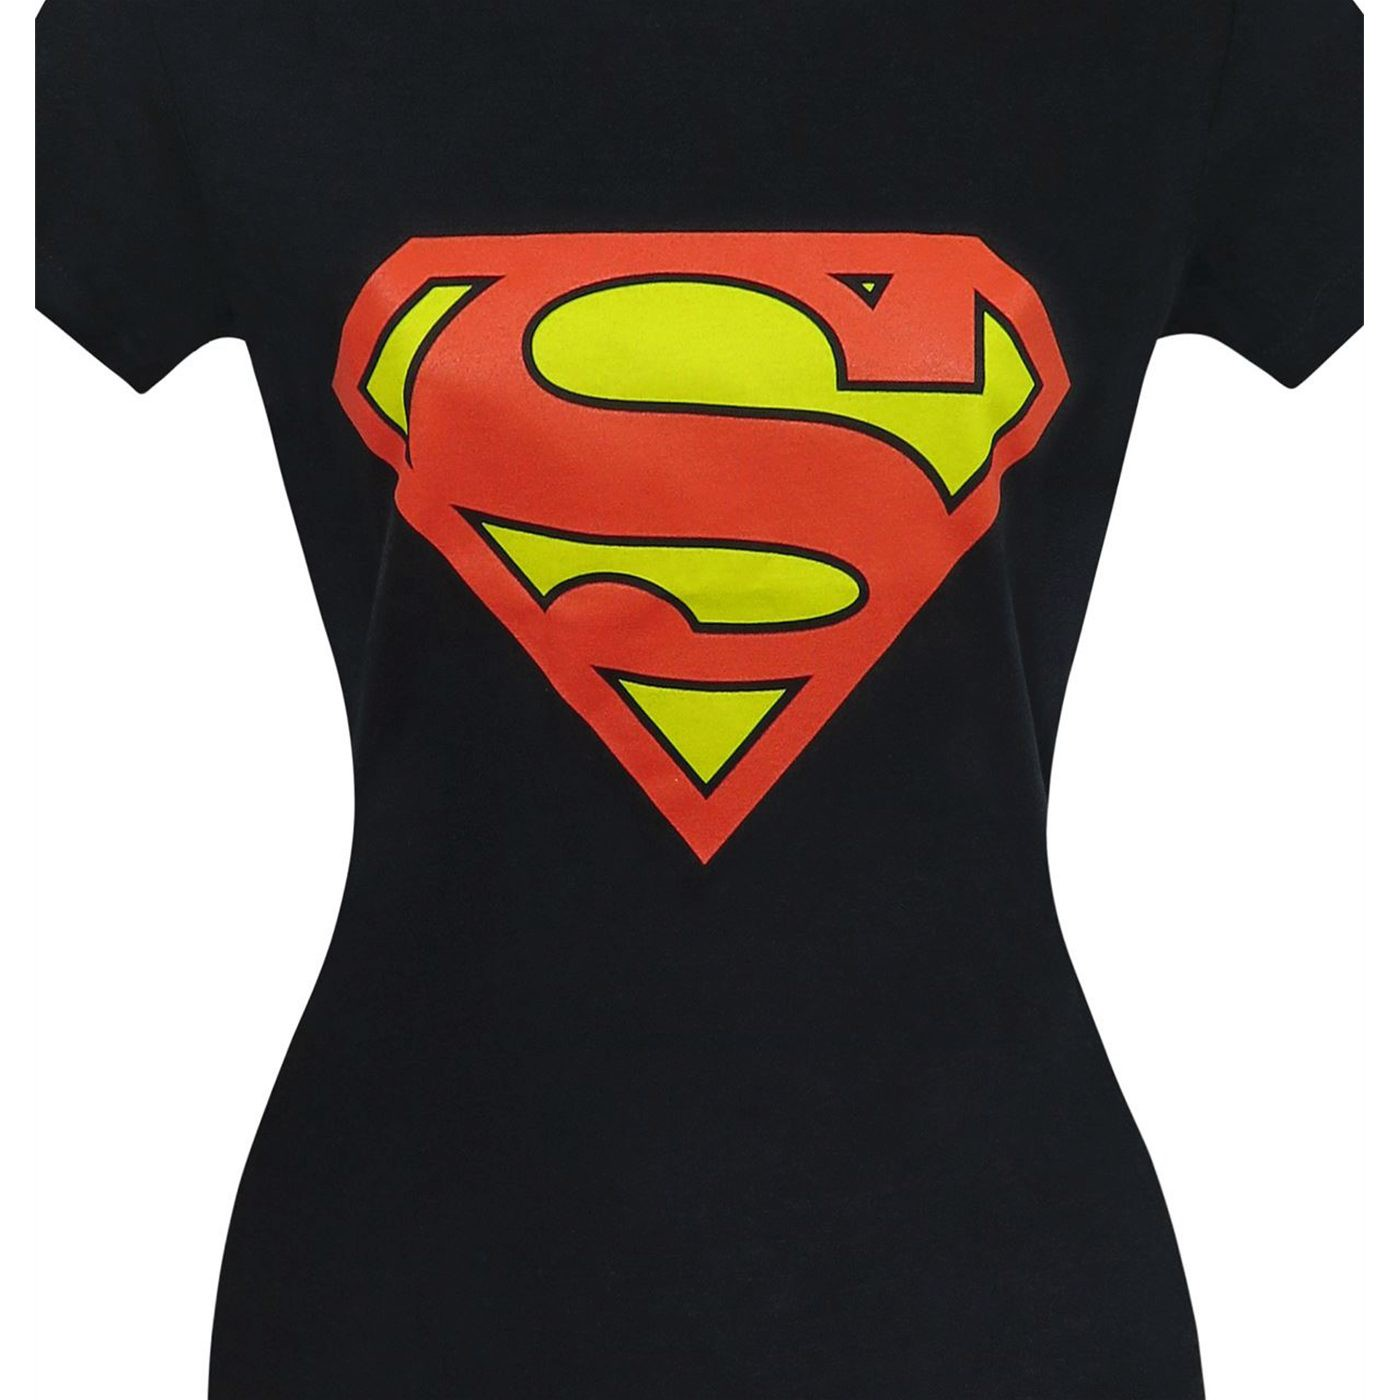 Superman Symbol Women's Black T-Shirt